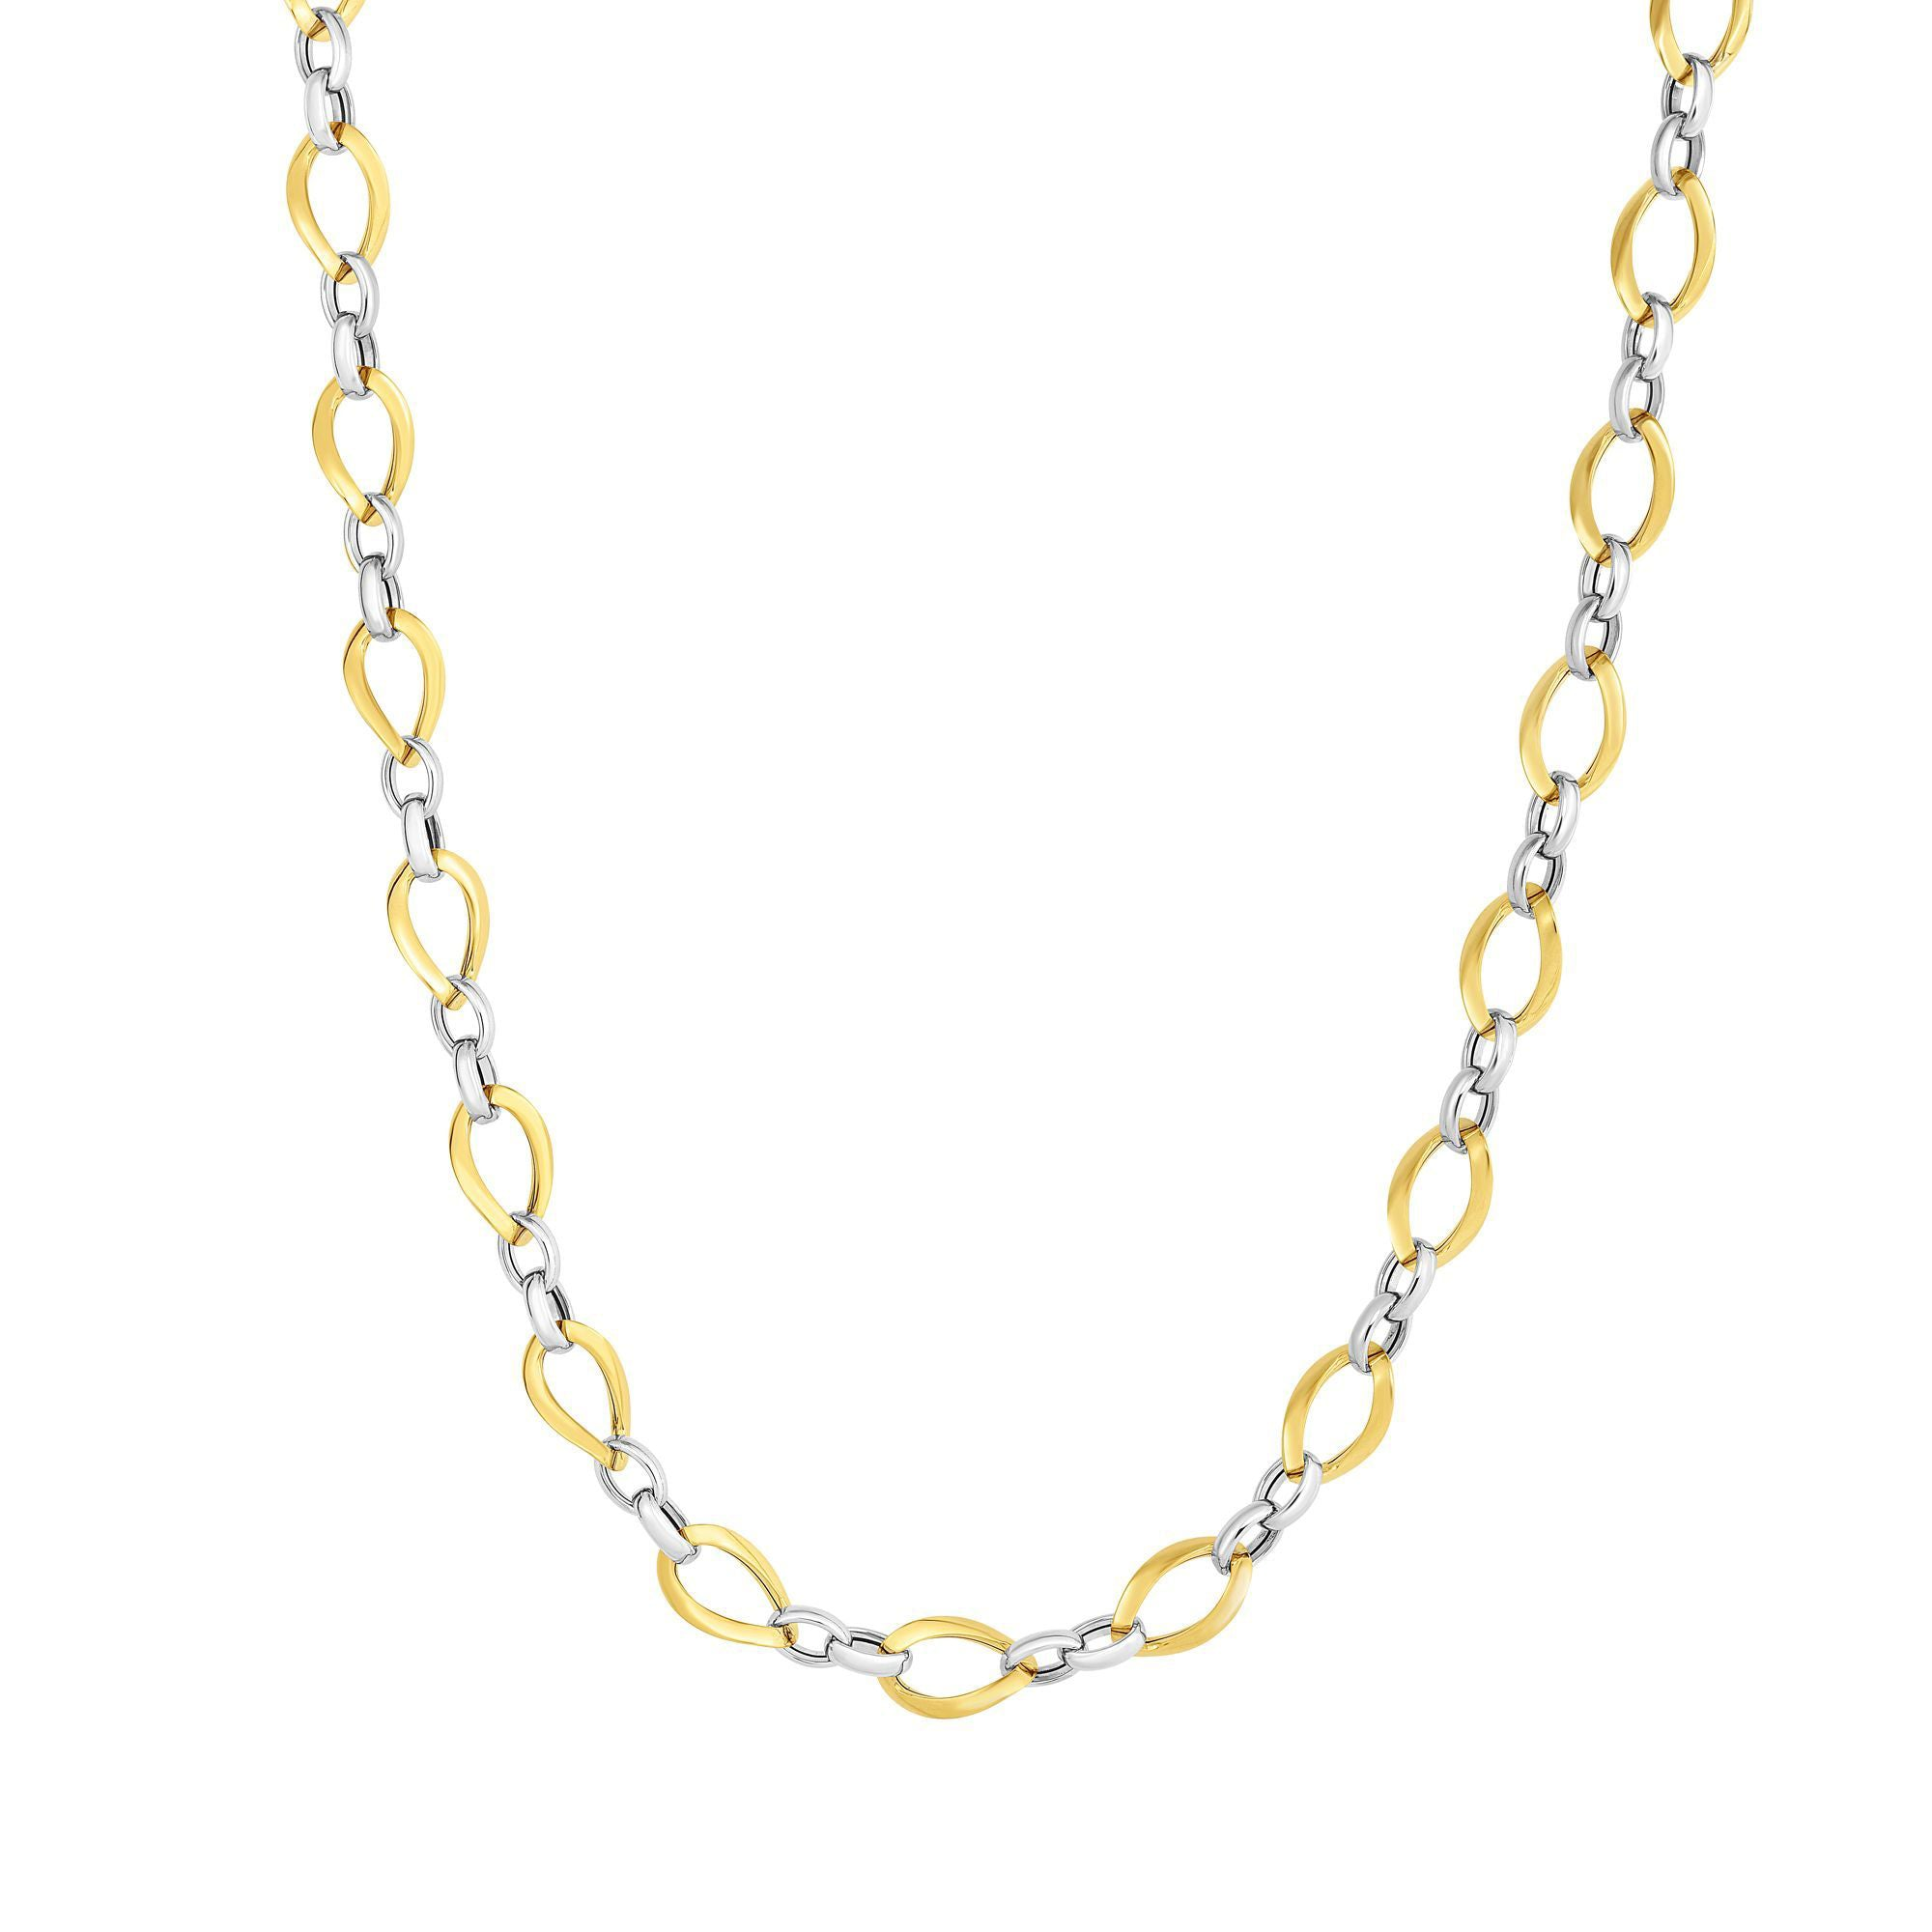 Two Tone Polished Oval Link Necklace, 14 Karat Gold